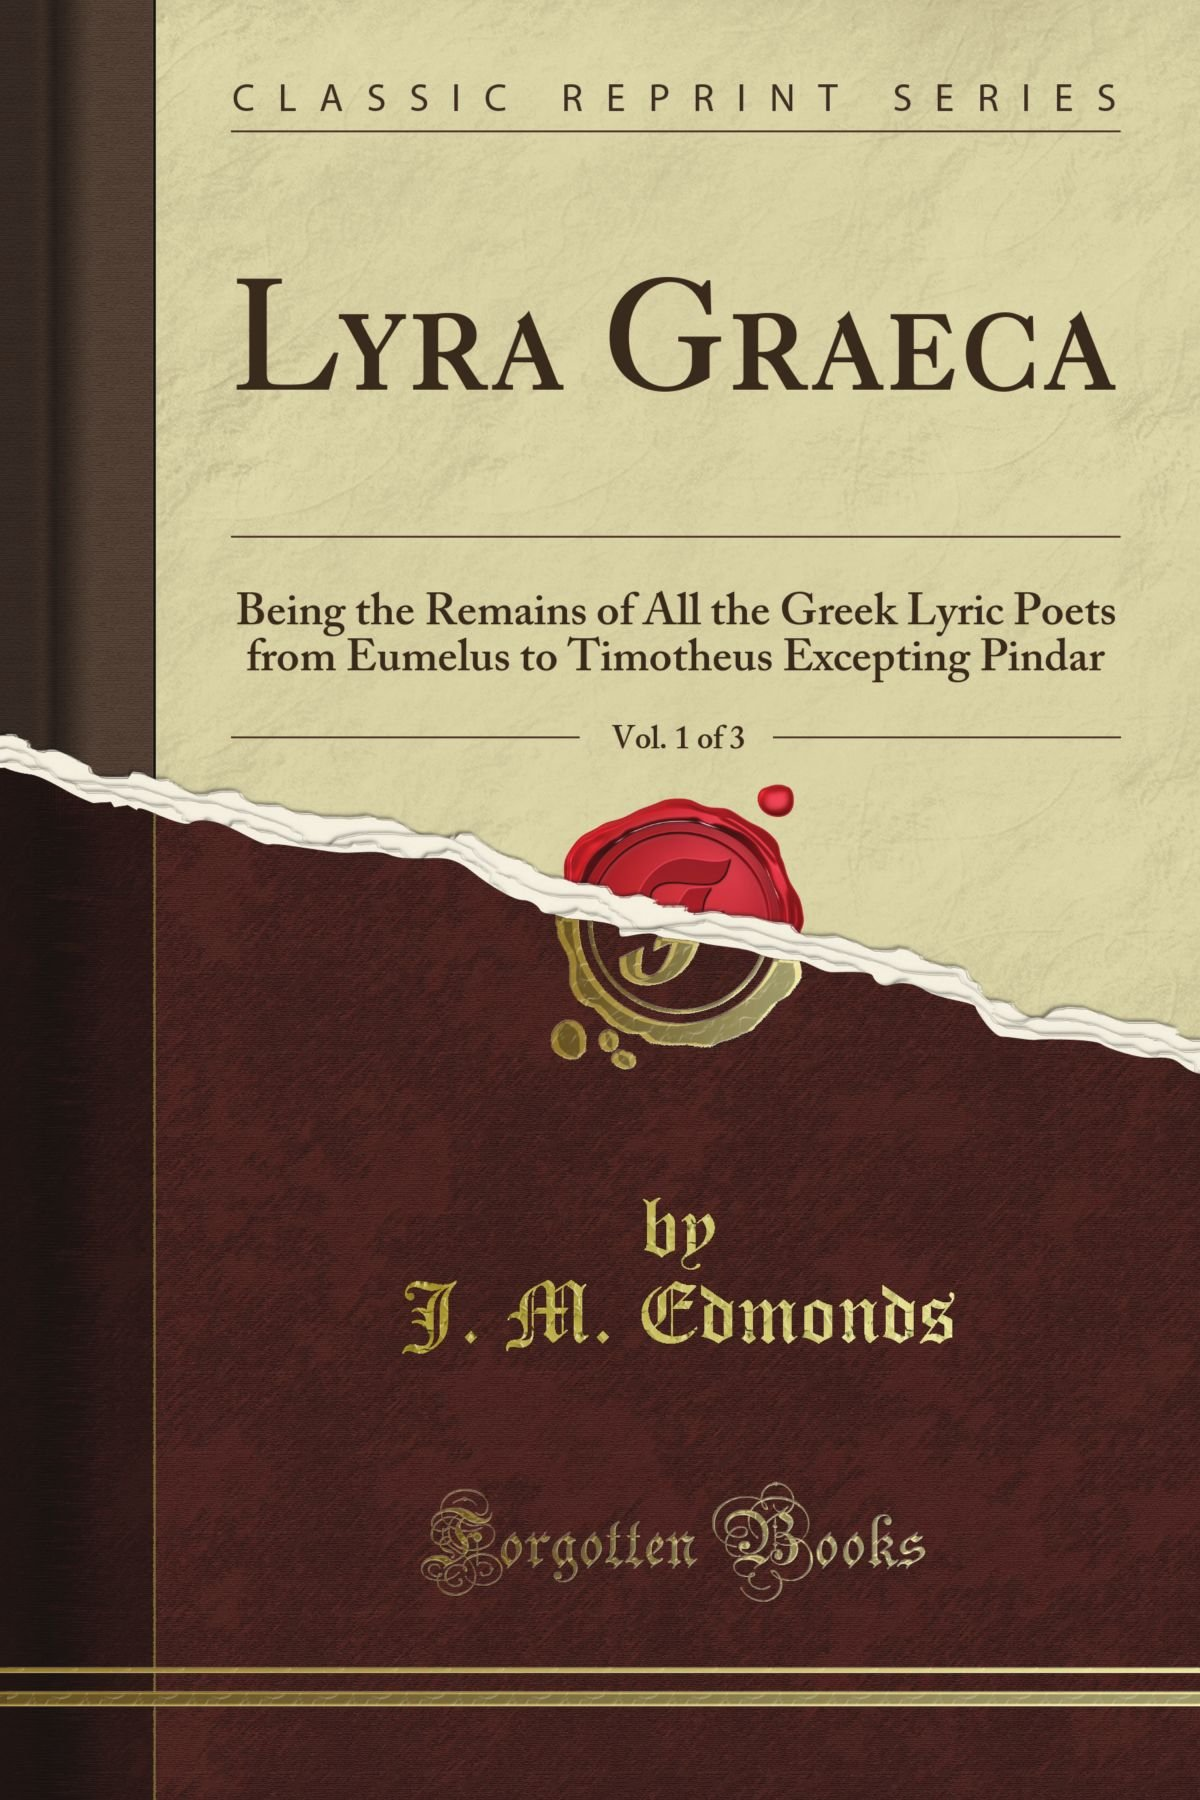 Lyra Graeca: Being the Remains of All the Greek Lyric Poets from Eumelus to Timotheus Excepting Pindar, Vol. 1 of 3 (Classic Reprint) PDF